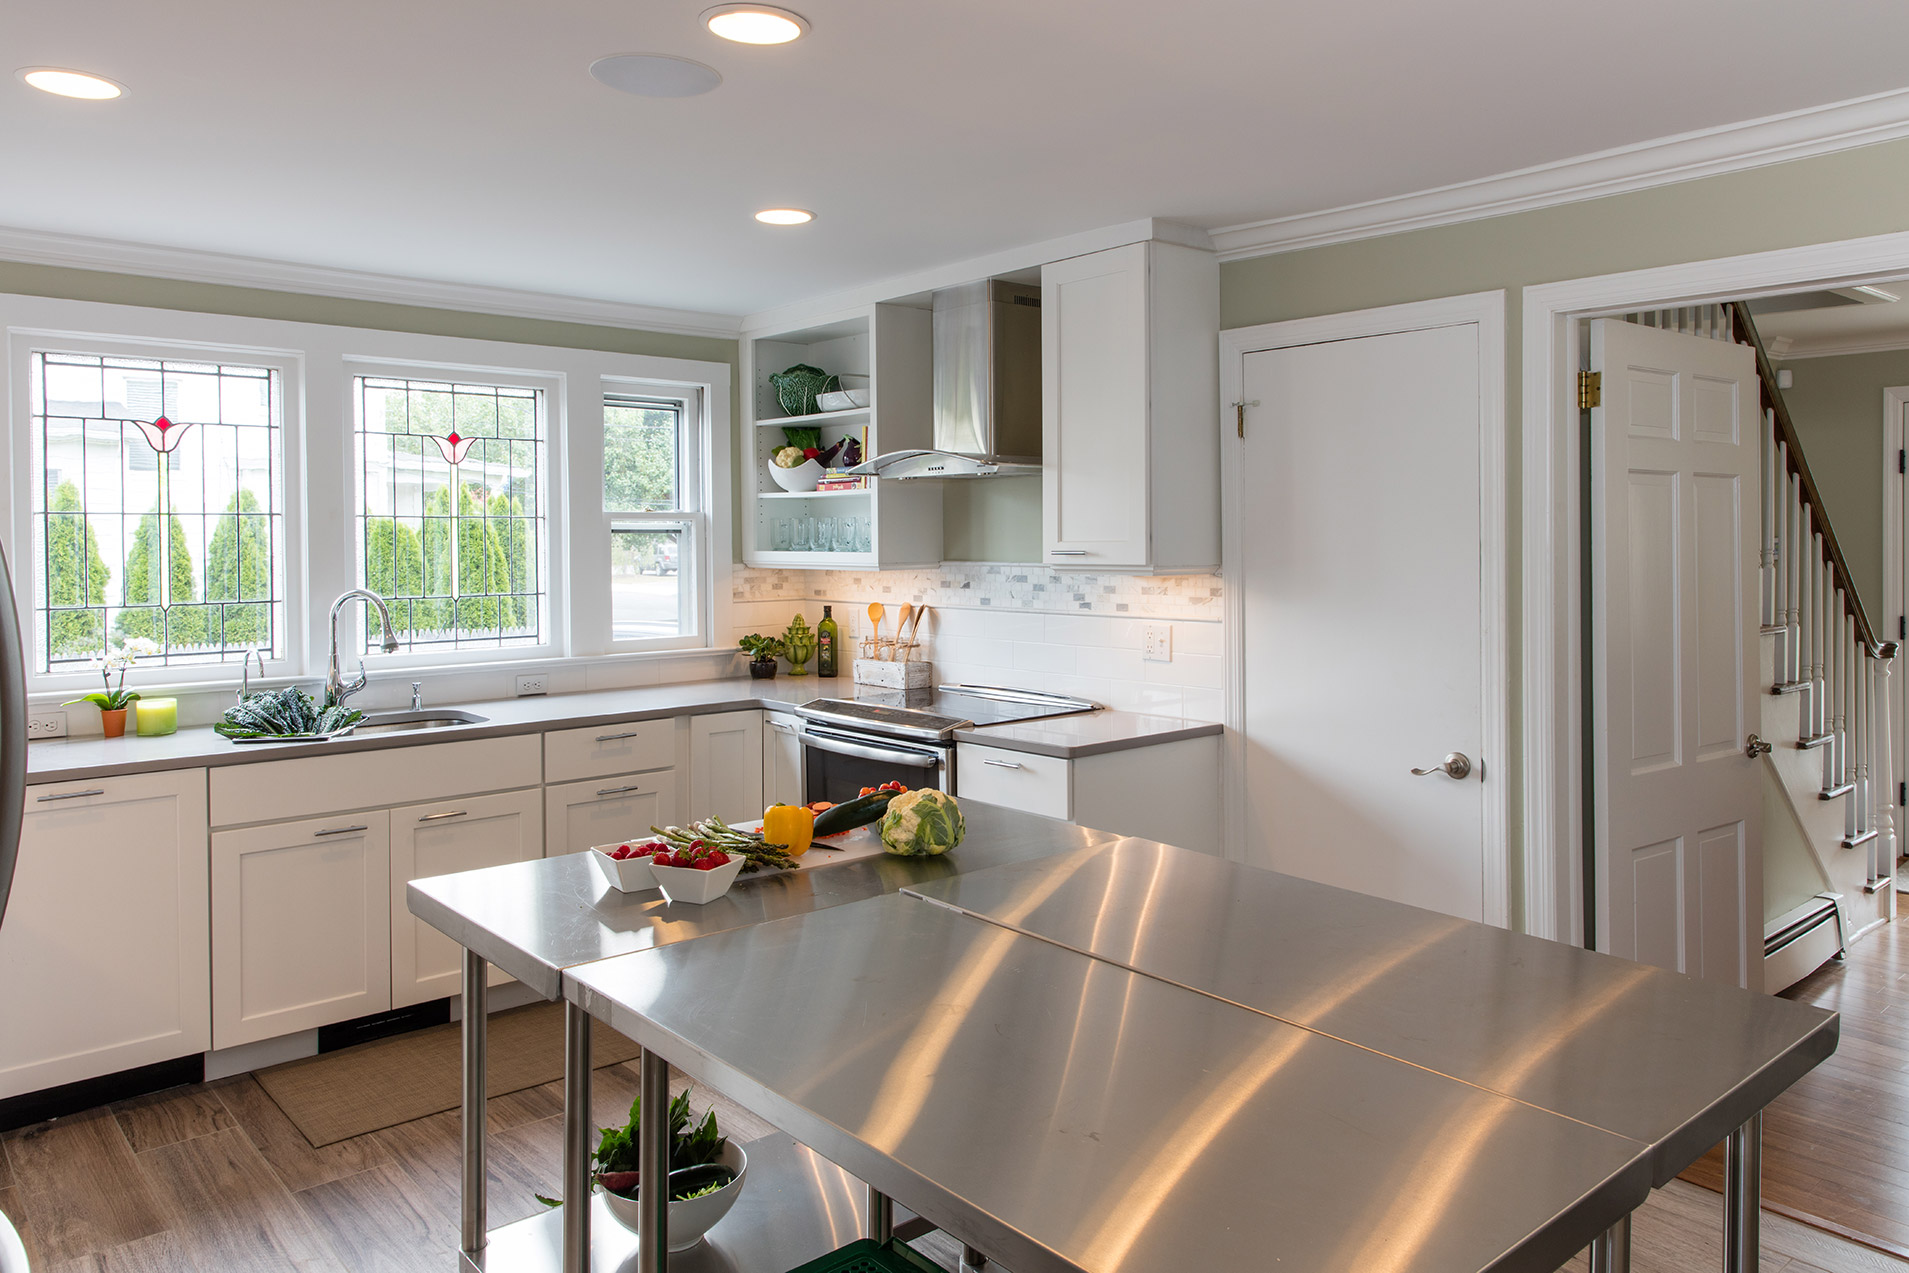 LP Kitchen Sync Challenge: A 4 Week REBOOT Of Your Kitchen Environment